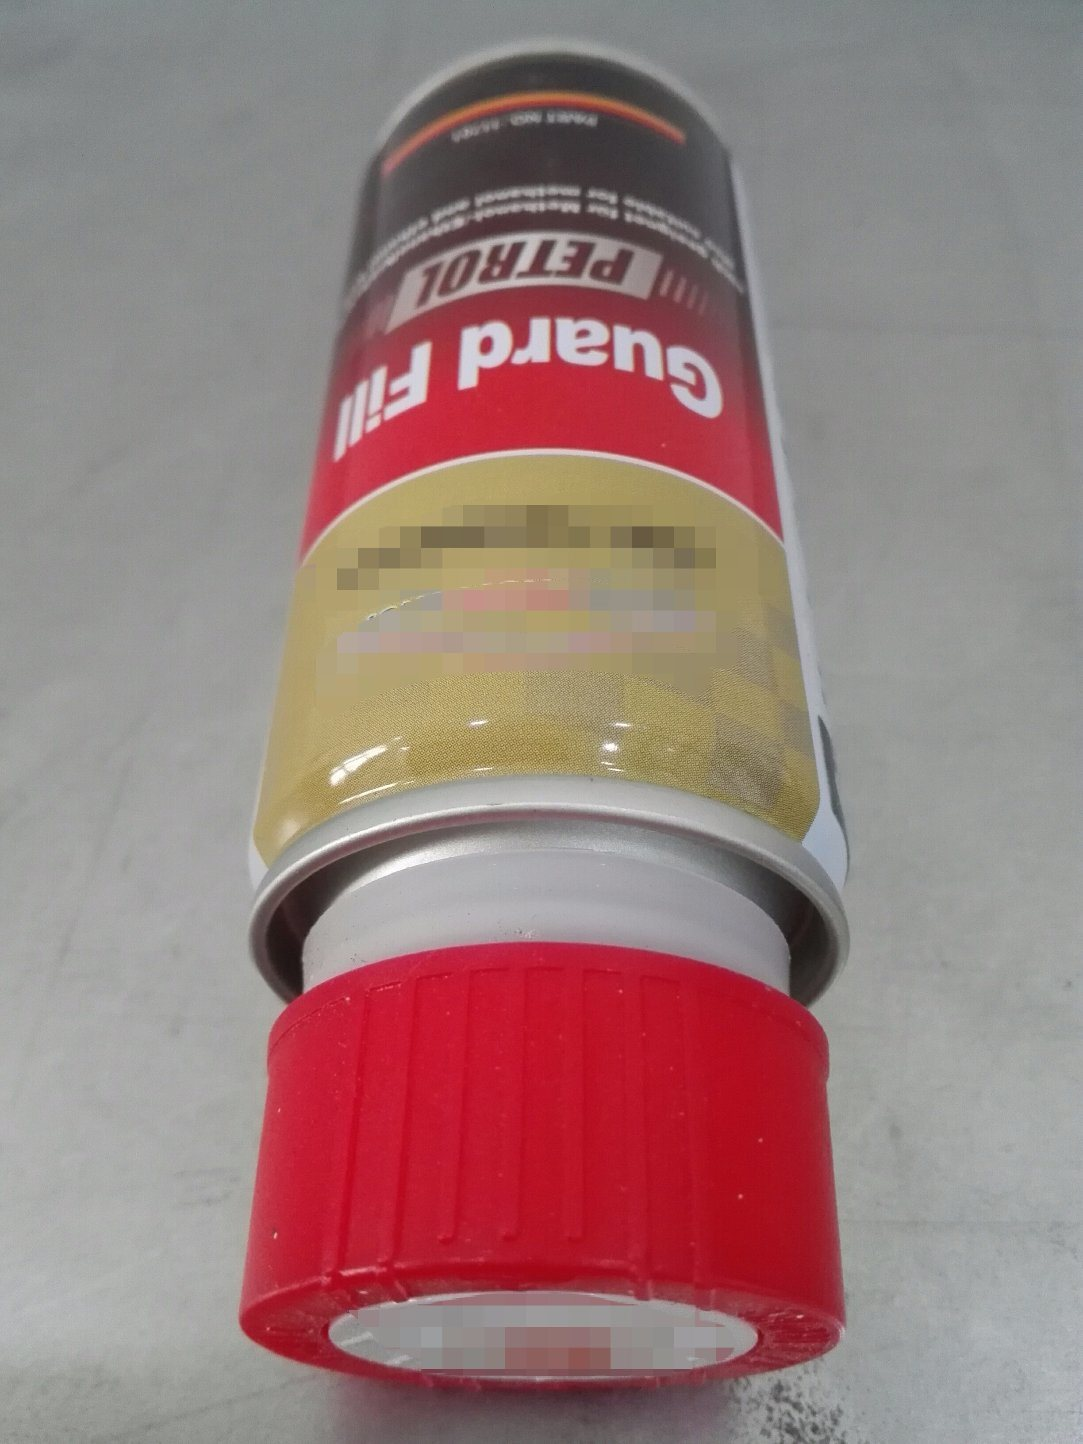 Metal Cans for Fuels or Petrol with Screw Lid Design